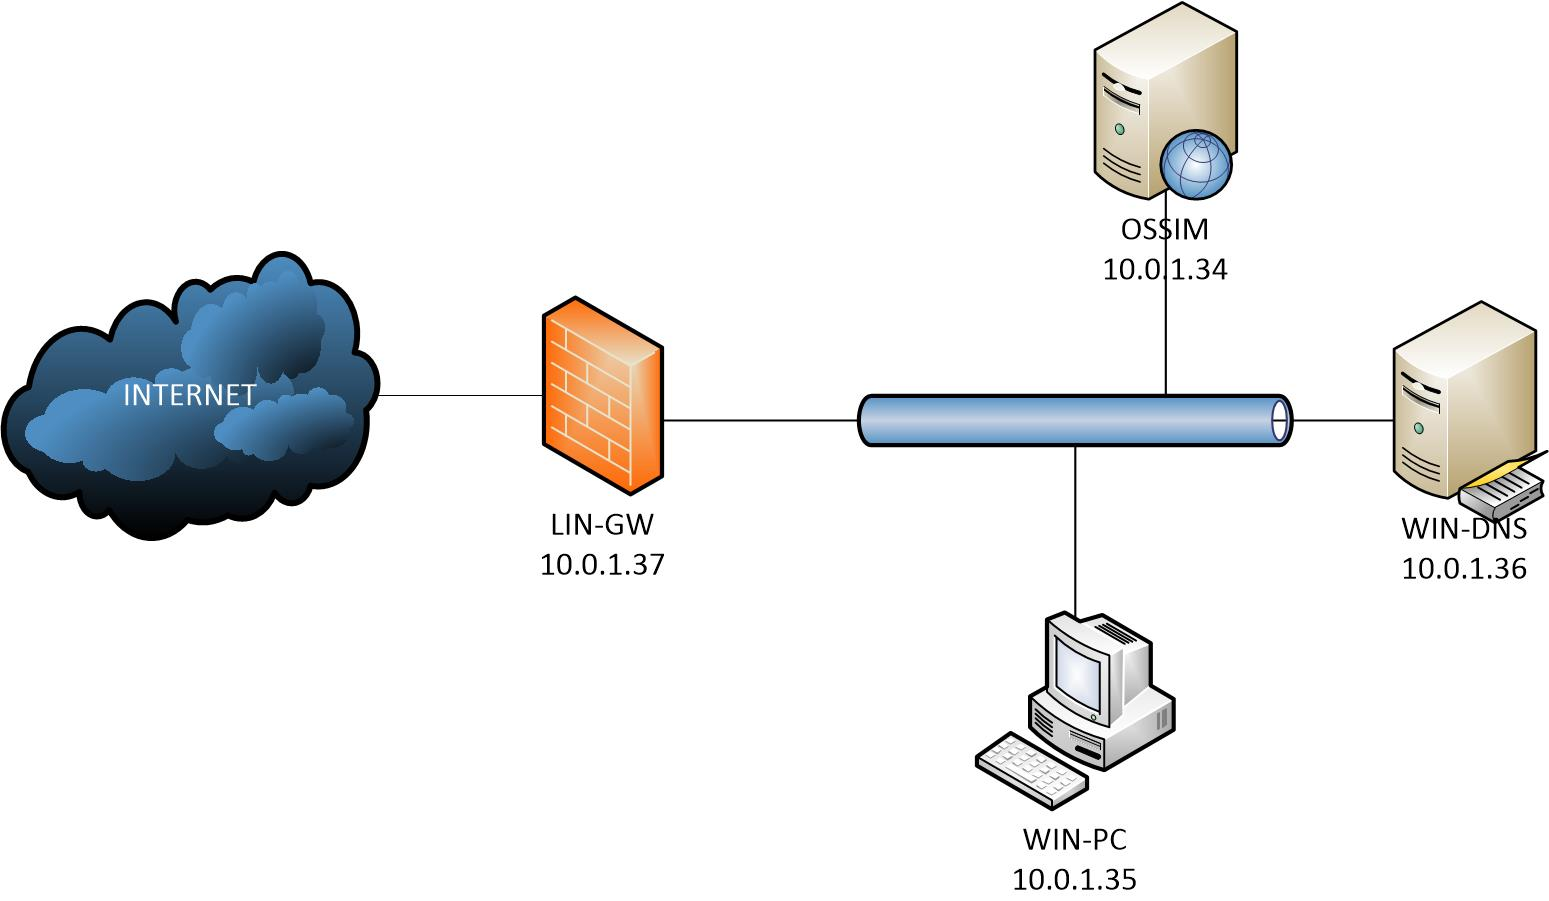 OSSIM lab environment including windows PCs and DNS as well as IPS